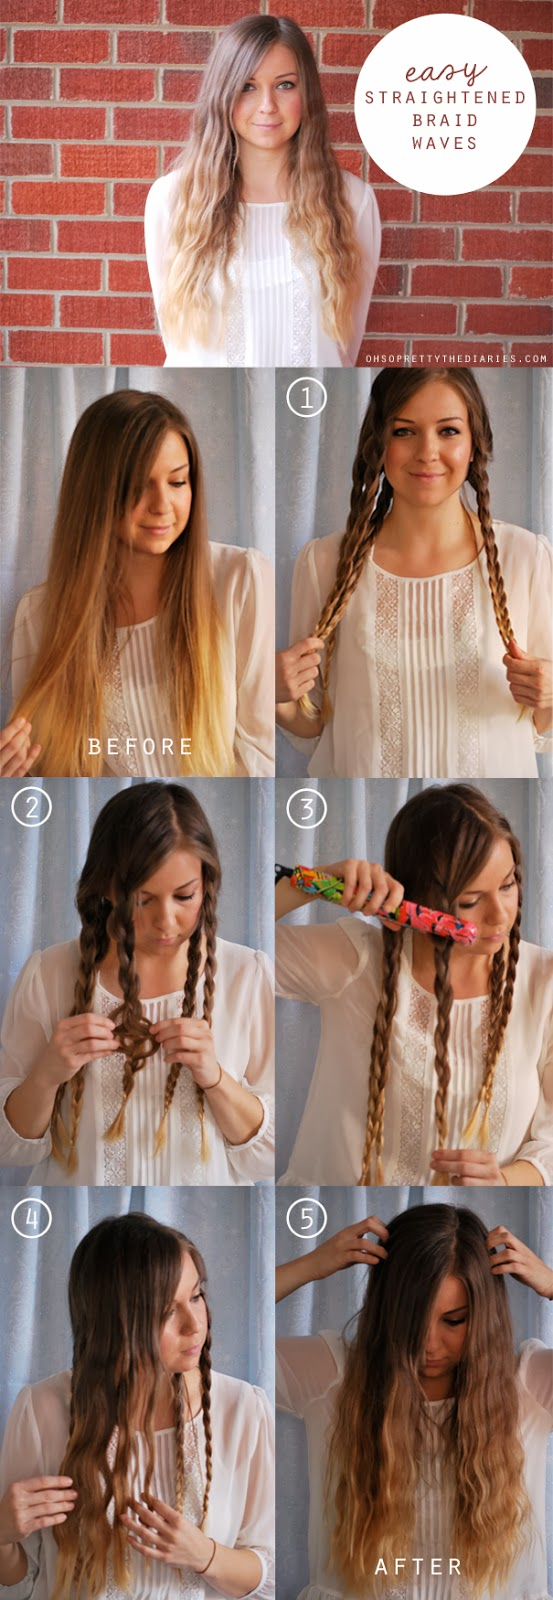 tutorial: straightened braid waves